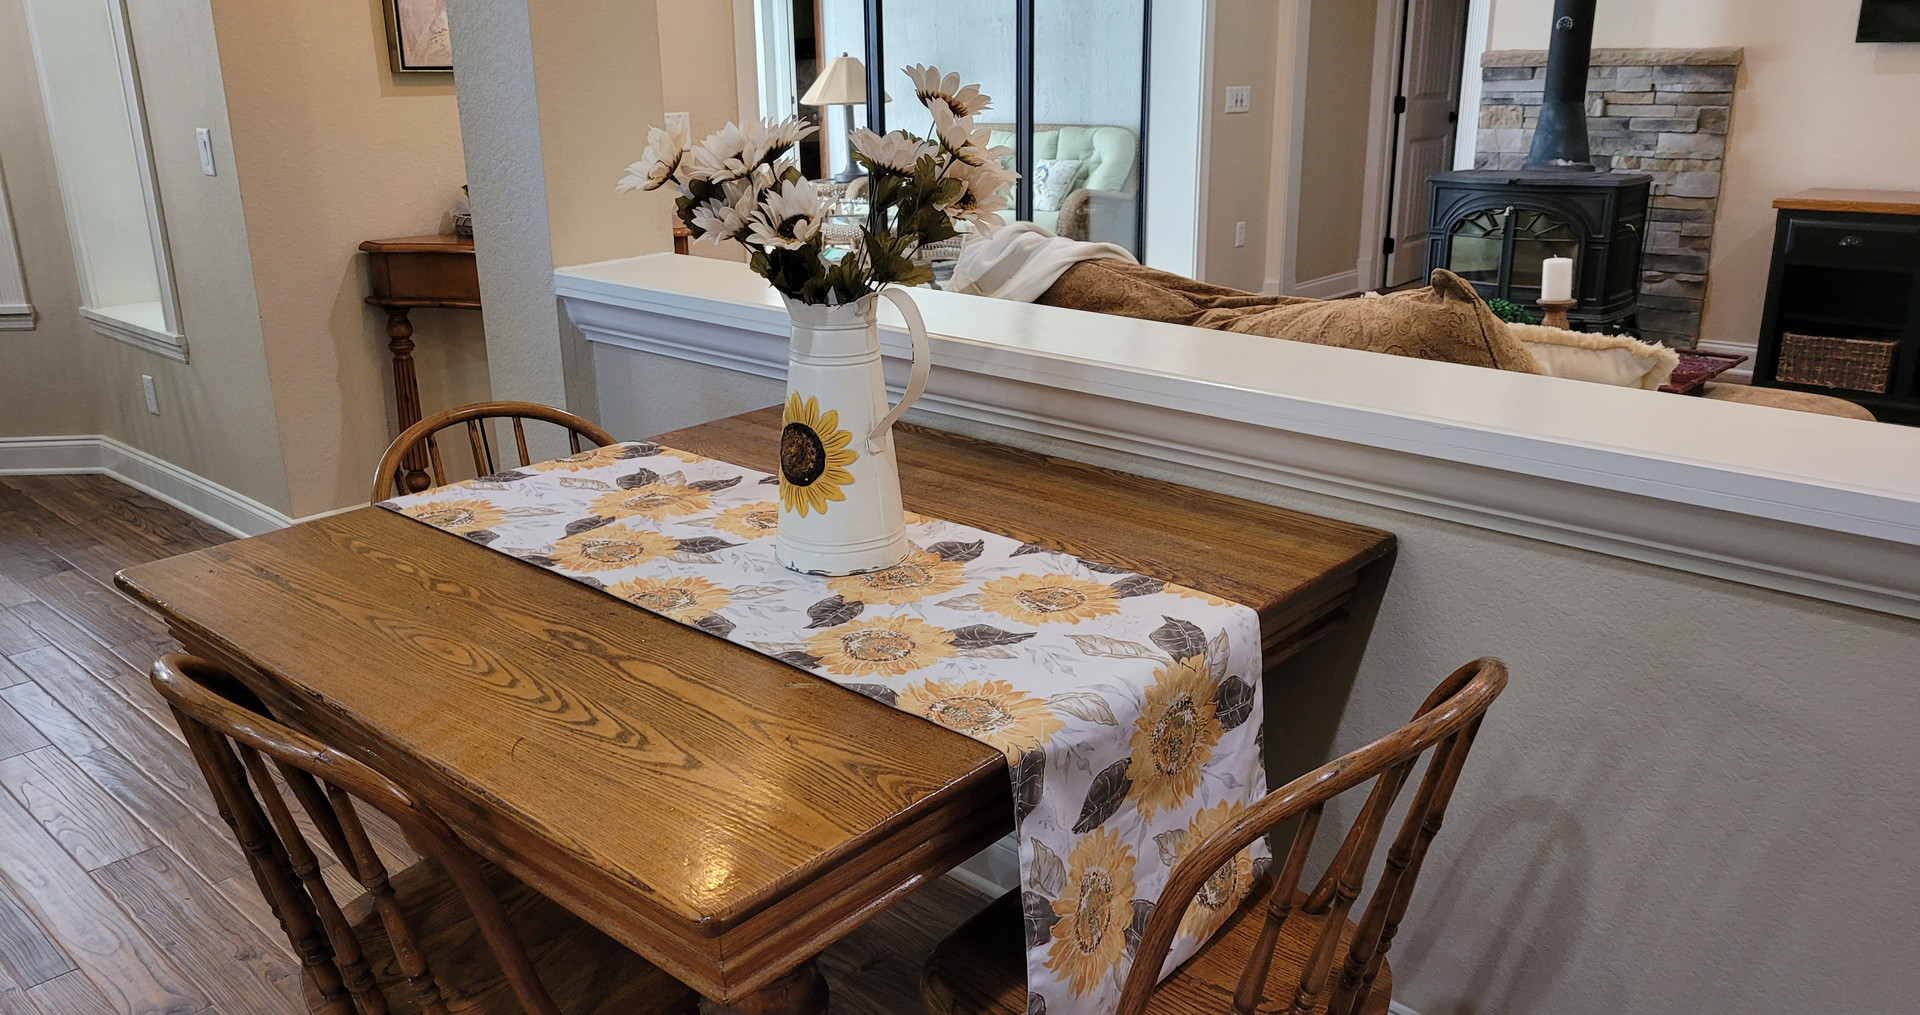 After staging; moved kitchen table away from island